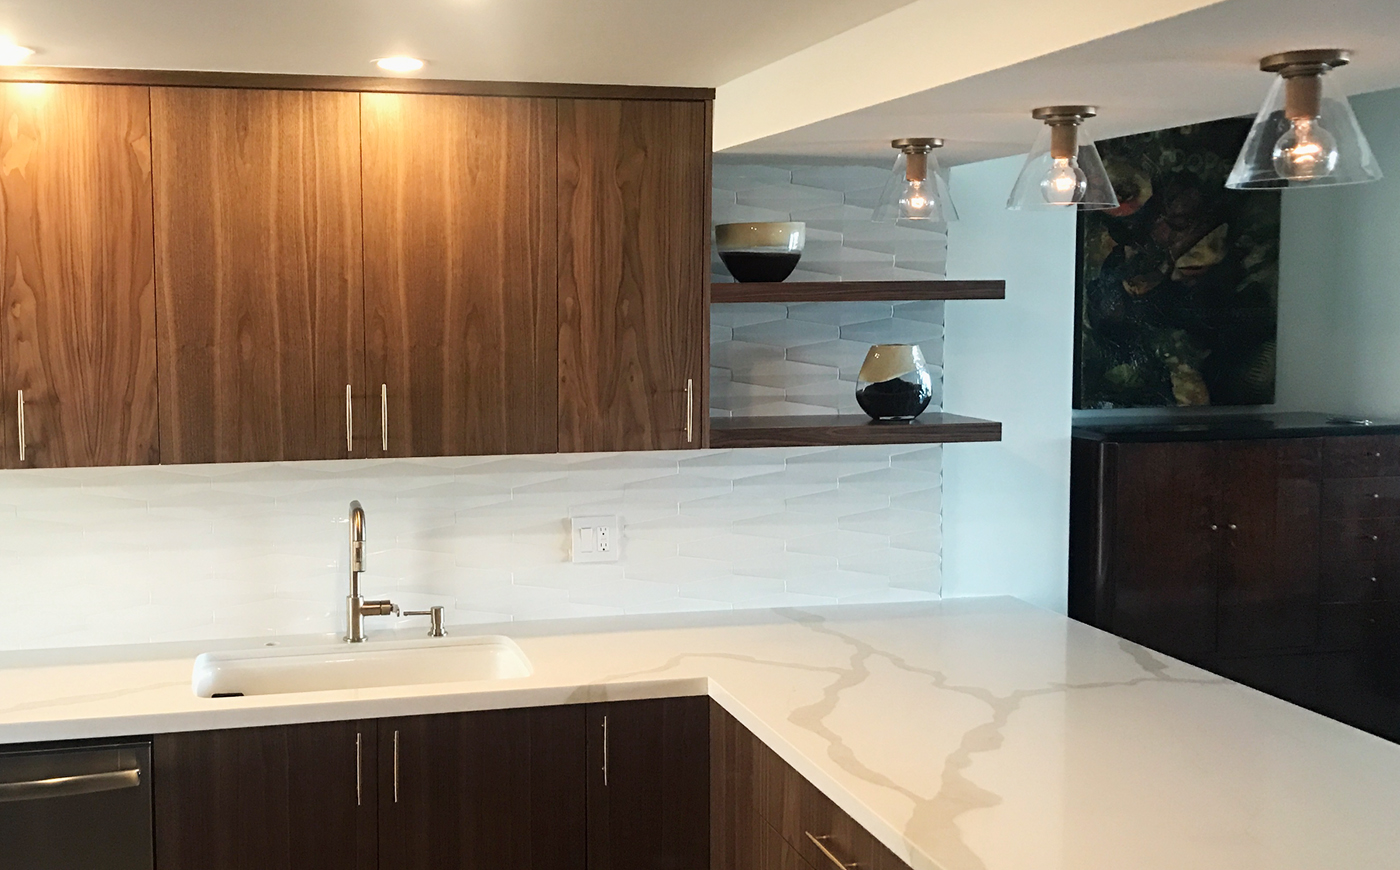 Marina City Drive Kitchen Remodel - Marina Del Rey, CAView More